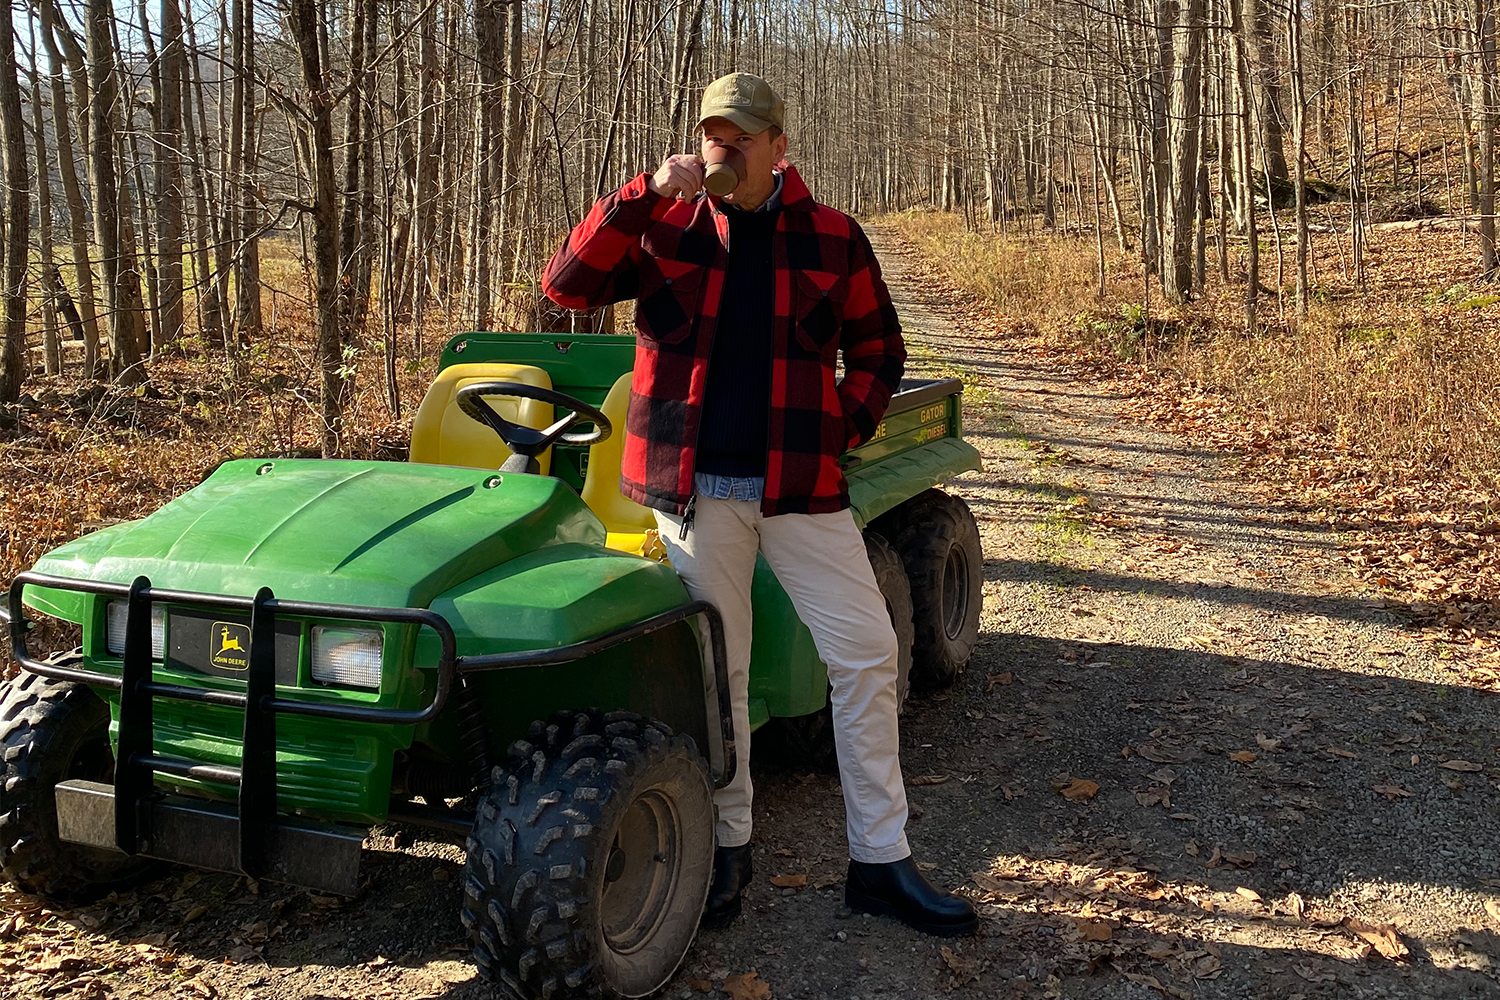 Photographer and magazine editor Matt Hranek sipping a cup of coffee in a buffalo plaid Woolrich jacket standing next to his John Deere Gator utility vehicle in the woods at his upstate New York estate